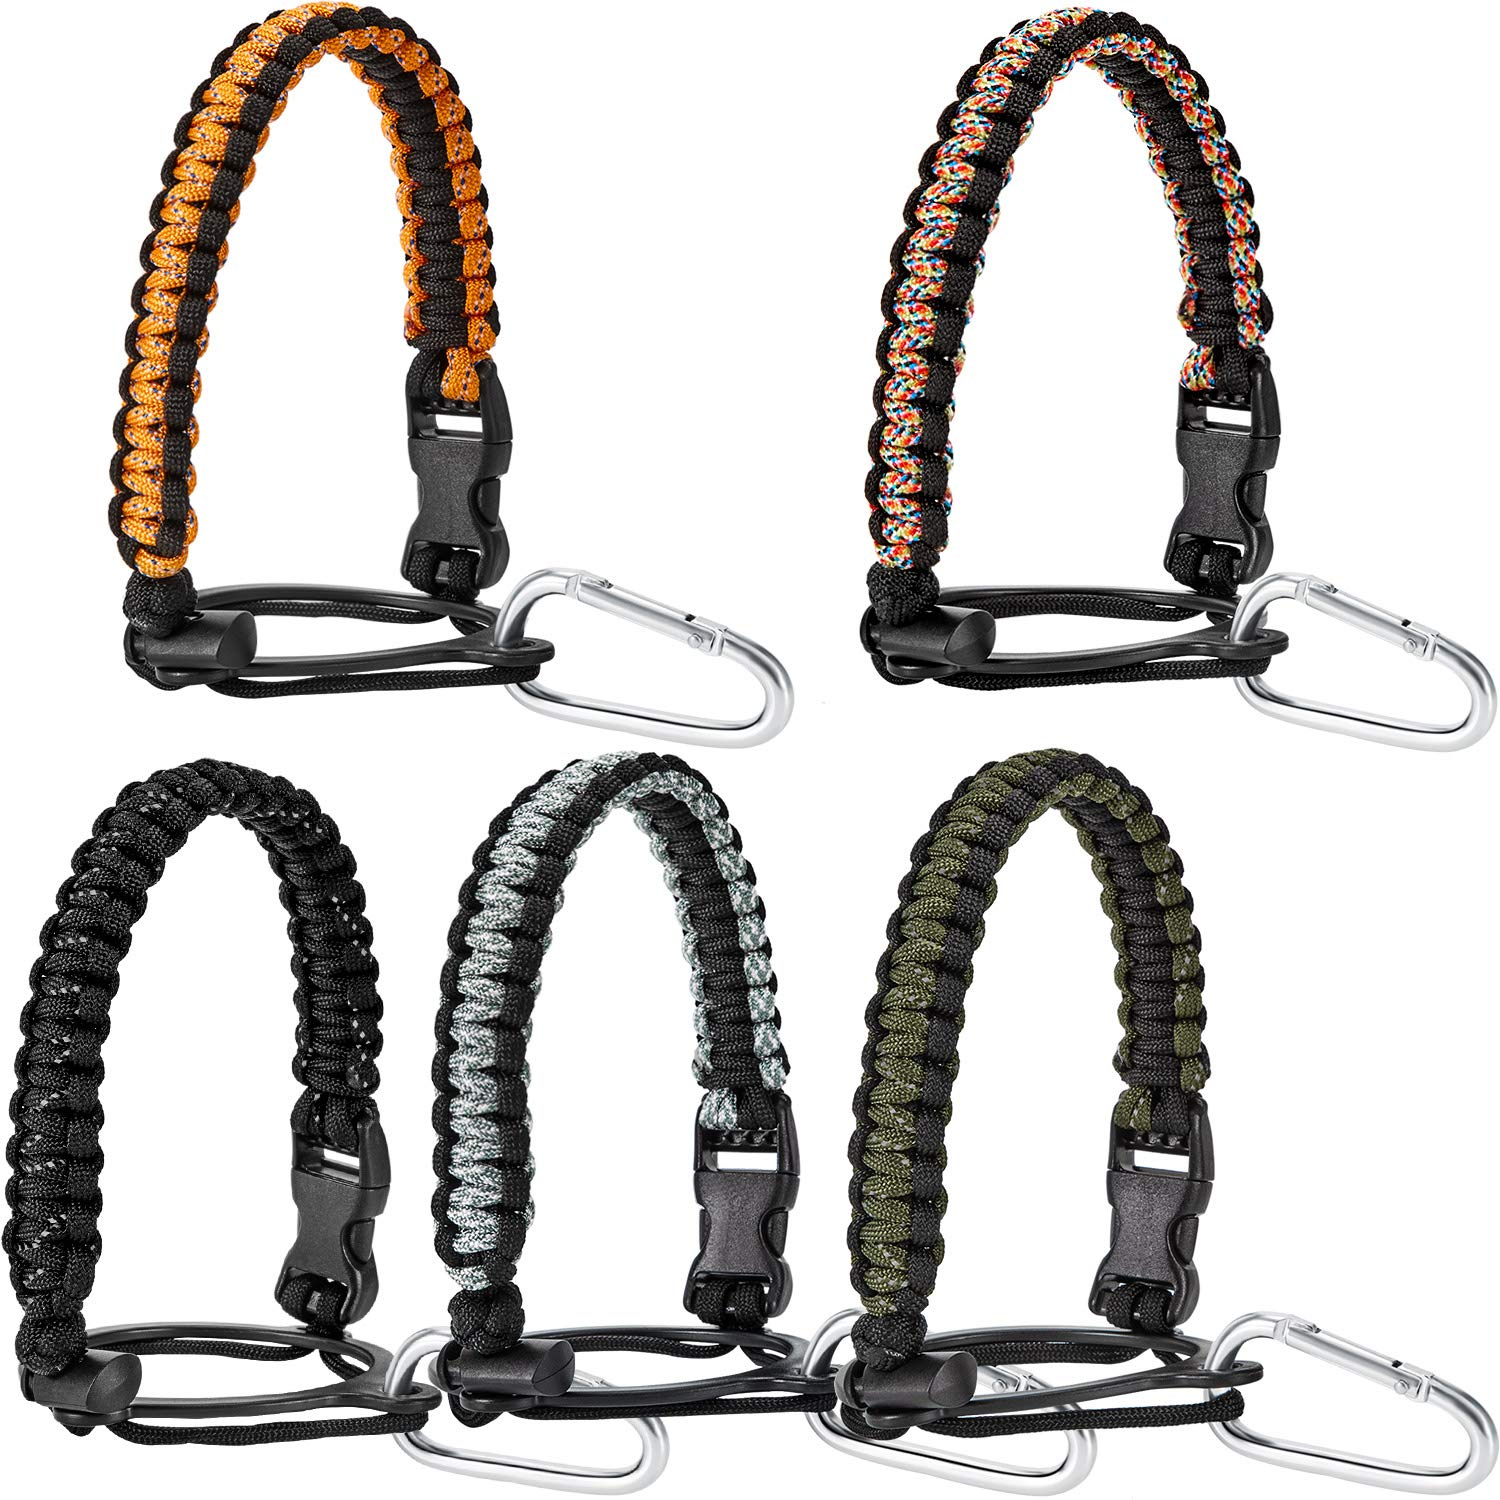 5 Sets Bottle Handle Strap Paracord Strap with Safety Ring and Safety Clips Keychain Buckle Clip for Water Bottle Fits 12 oz to 64 oz Bottles